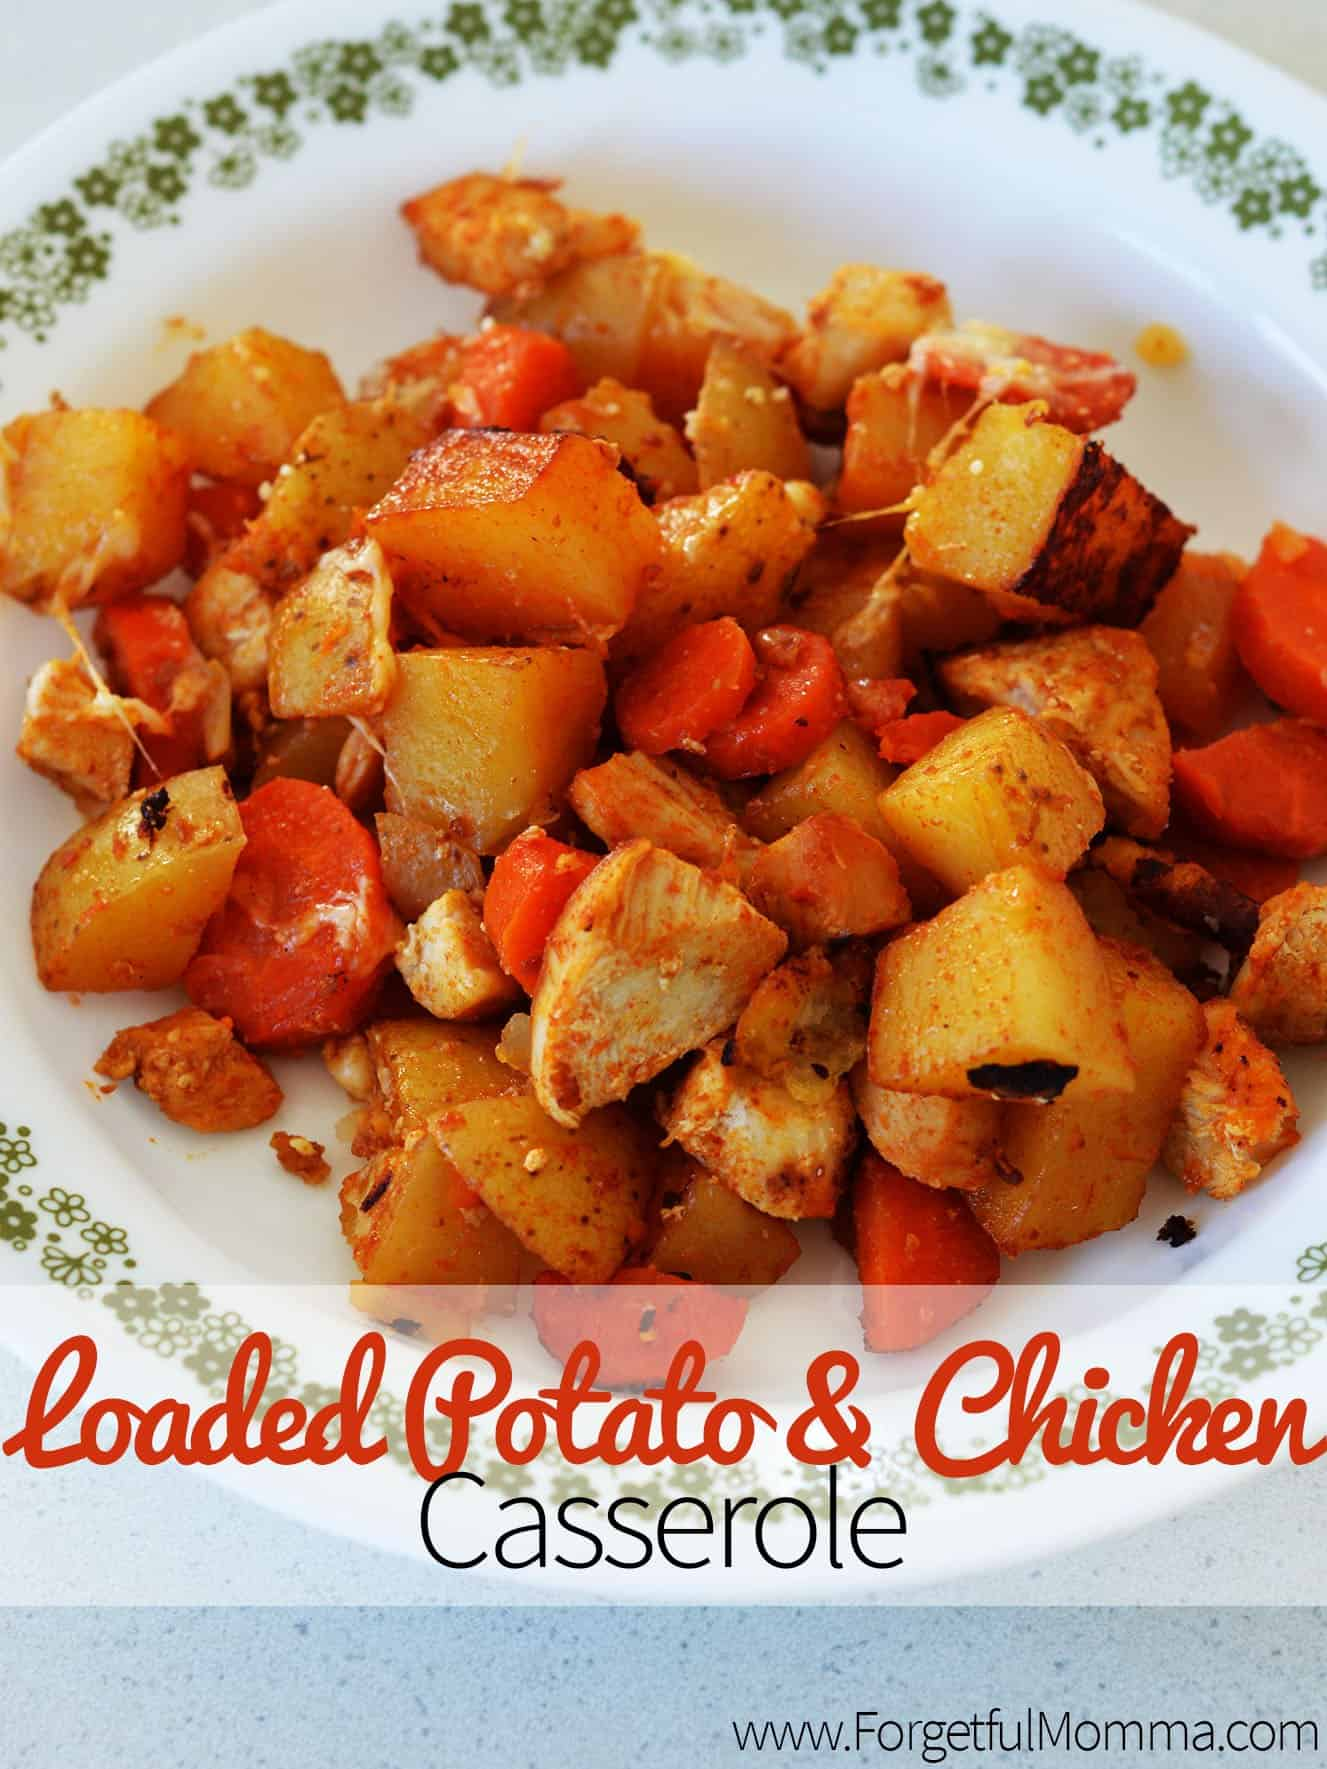 Loaded Potato & Chicken Casserole